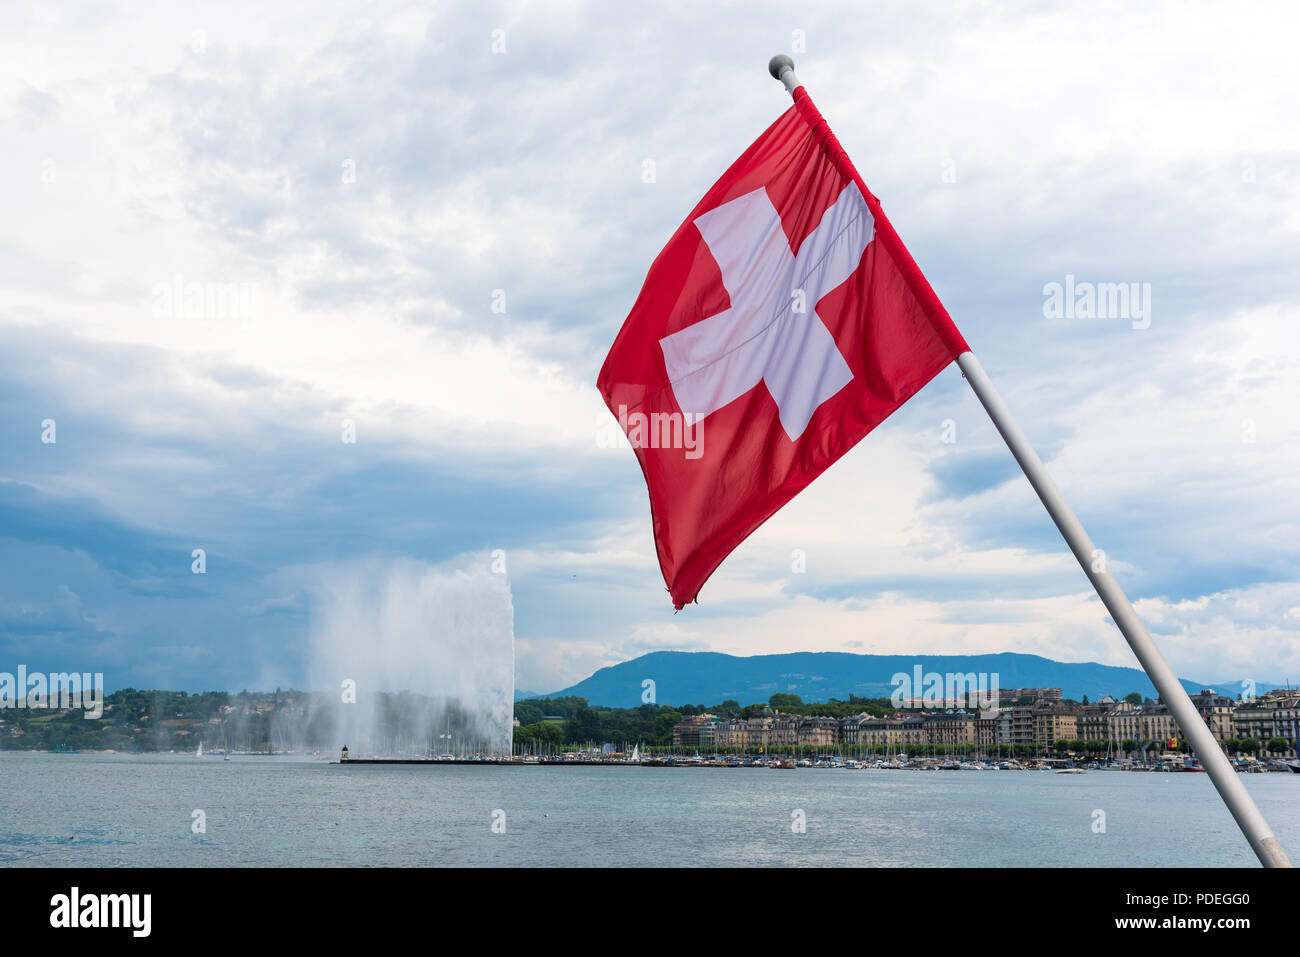 National flag of Switzerland flying from a pole on Pont du Mont Blanc with the Jet d'eau in the background - Stock Image